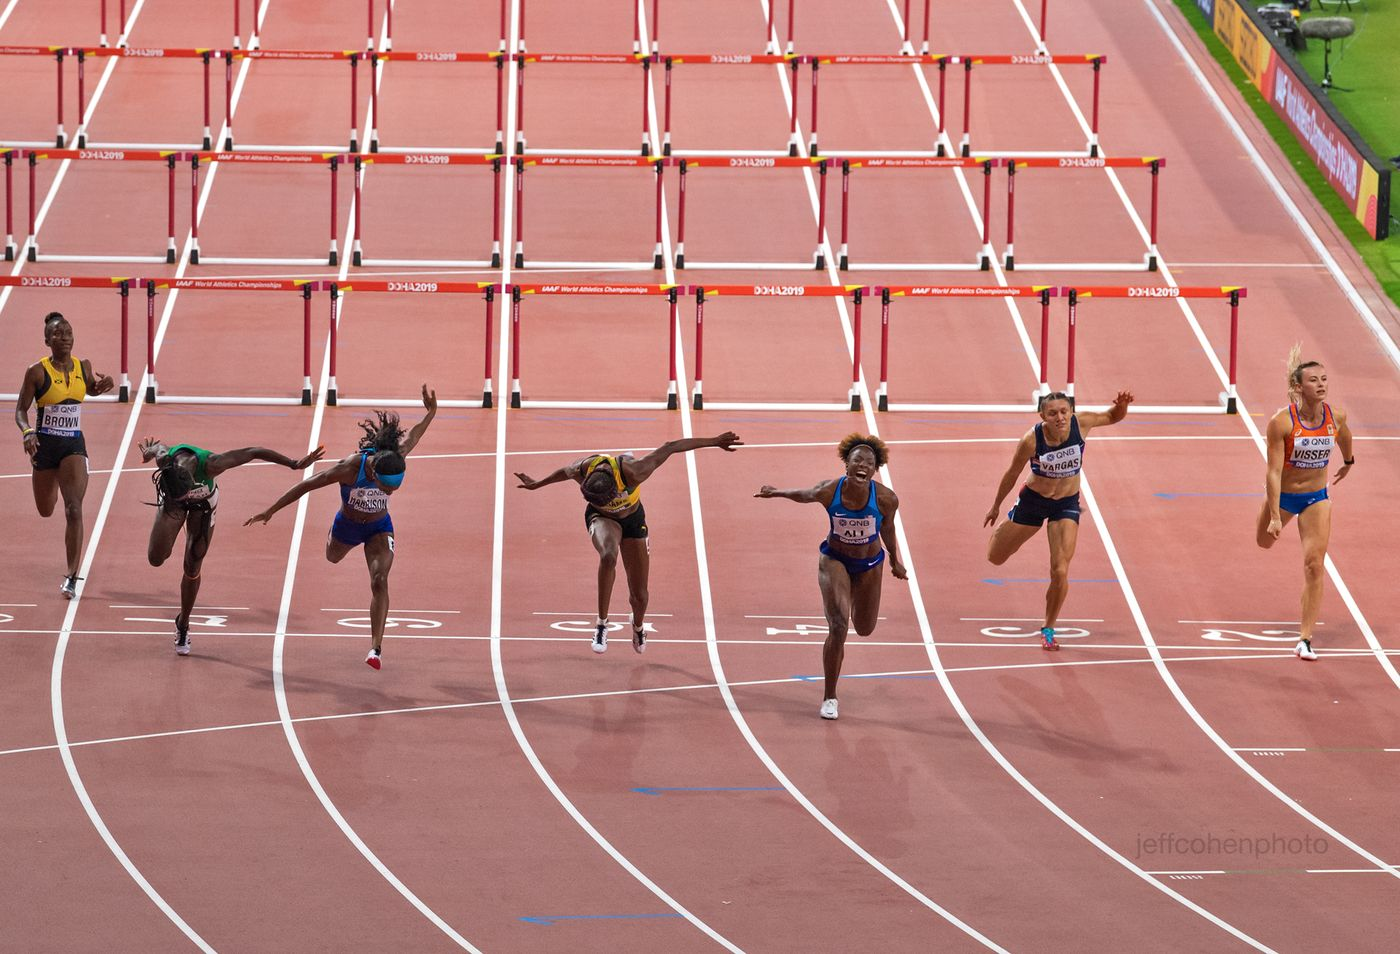 Nia ALi 100 meter hurdles, world champion